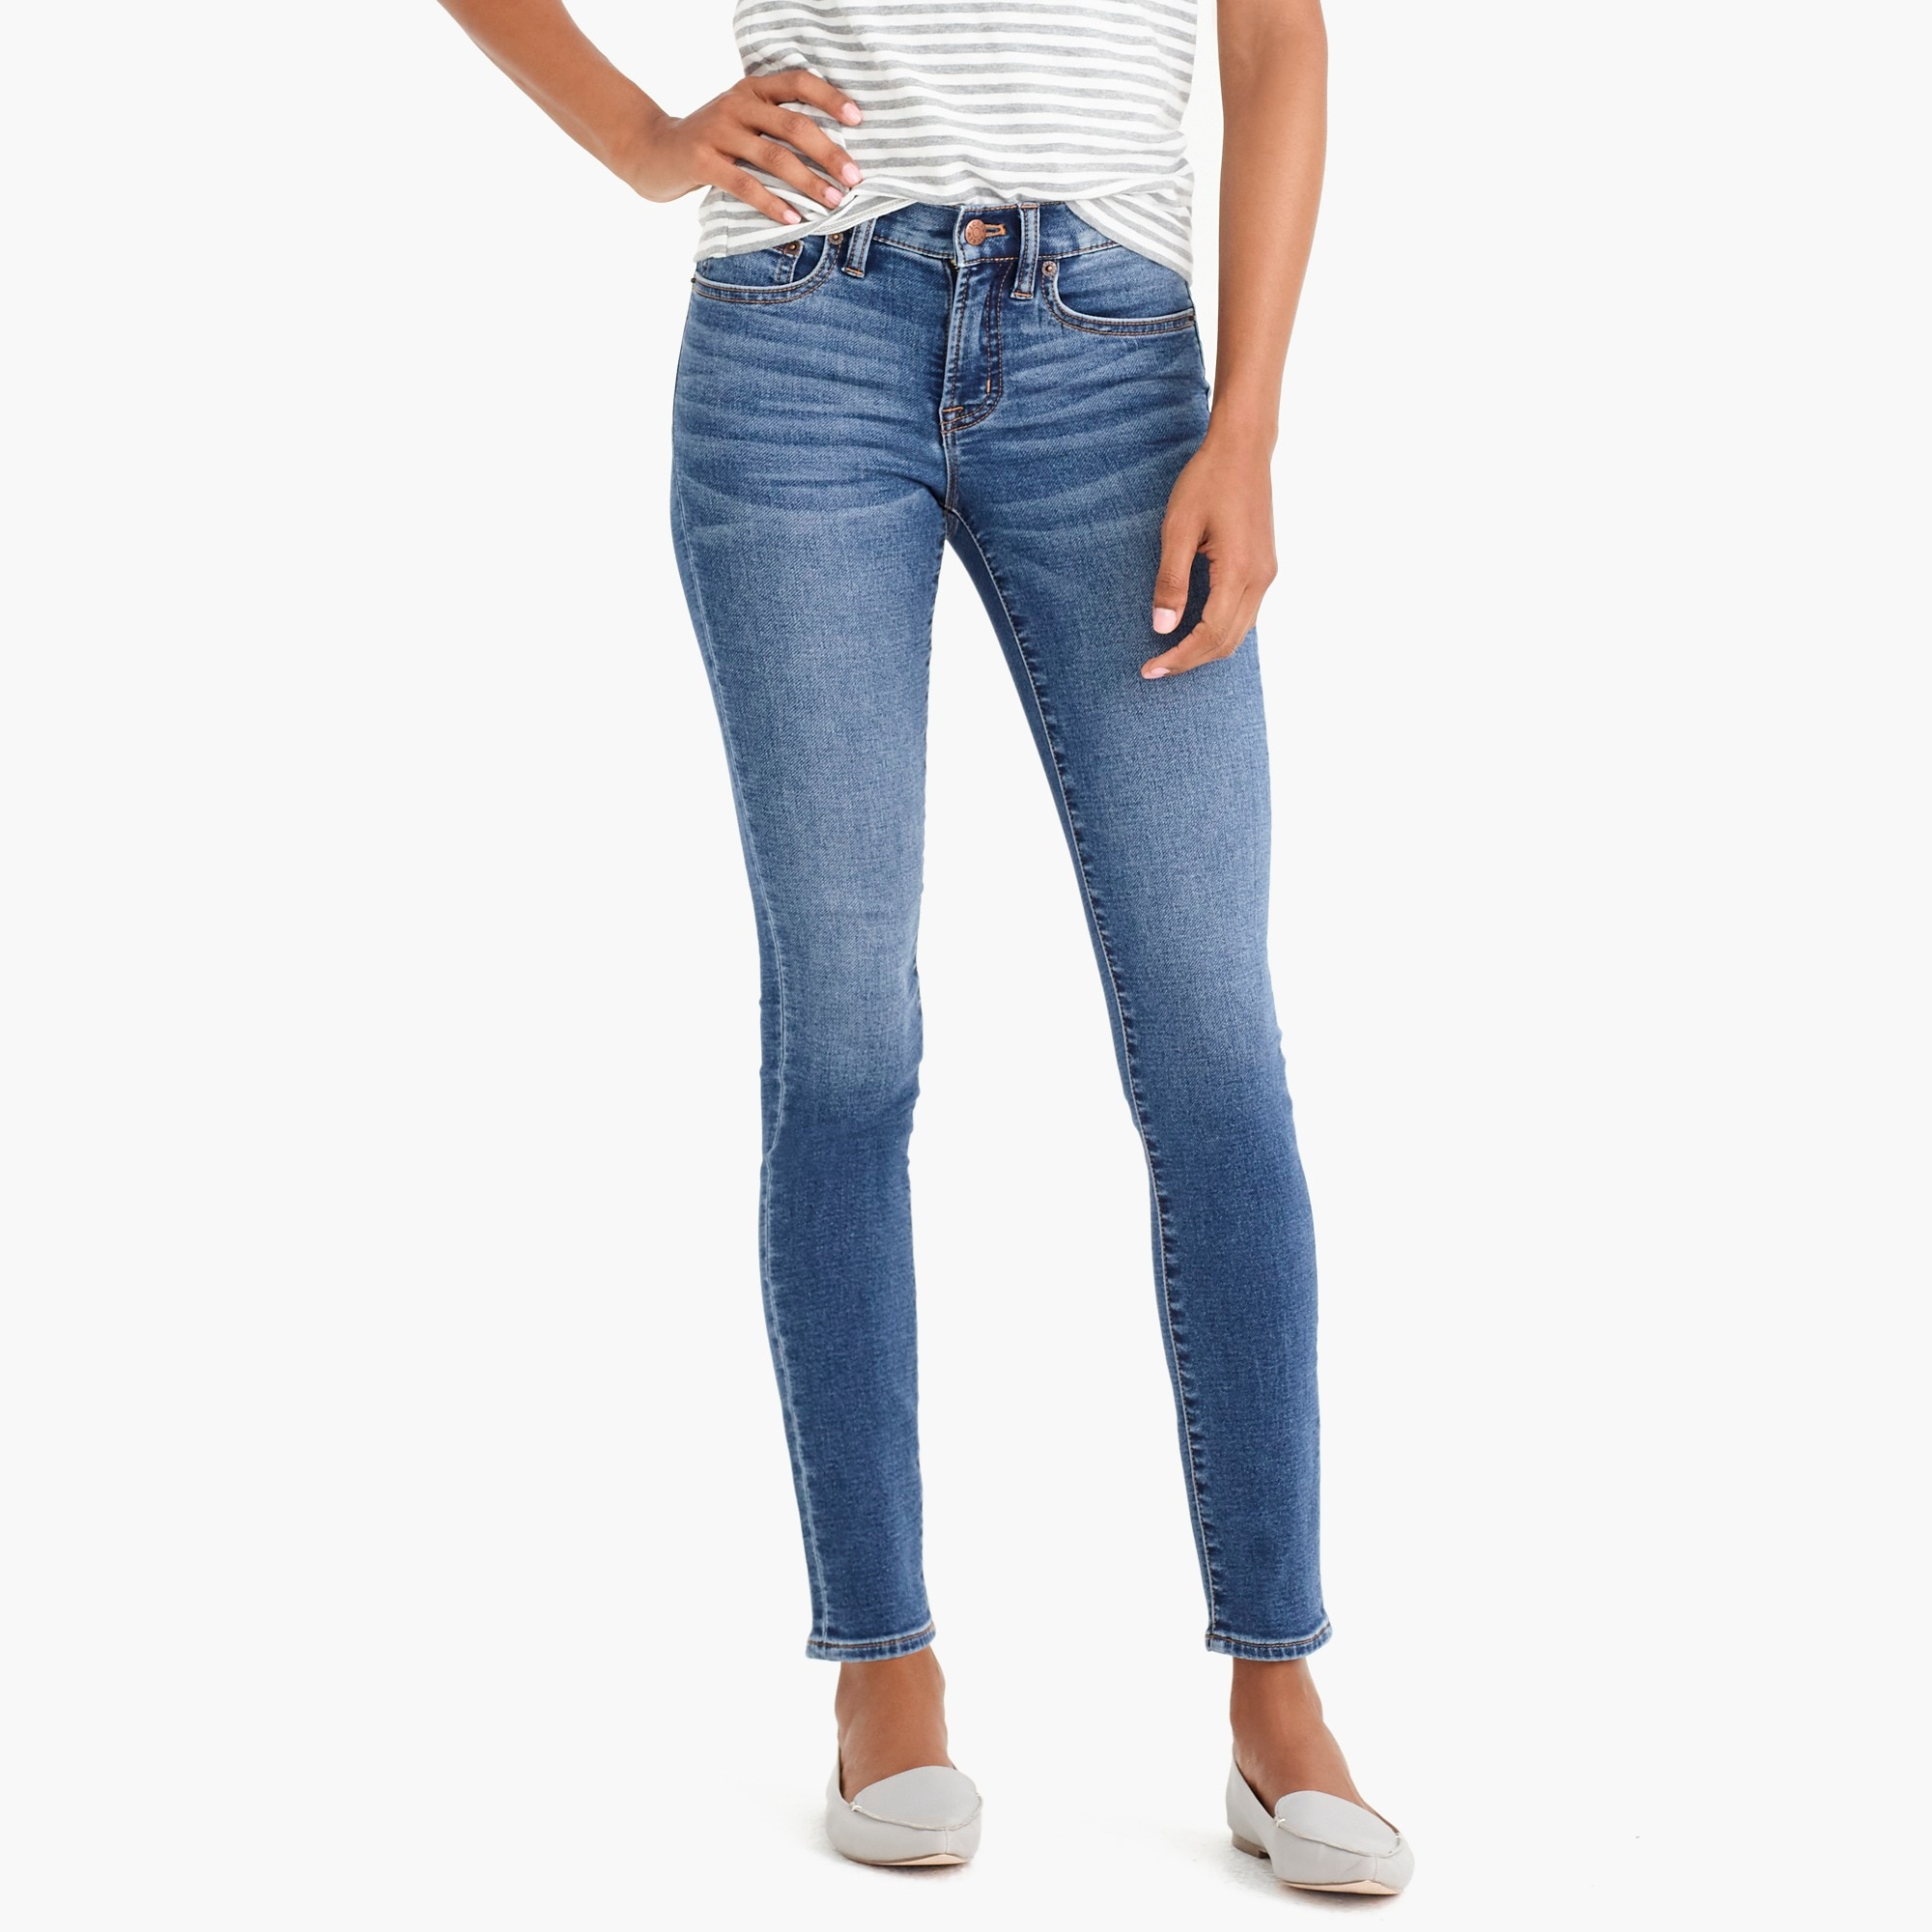 "8"" anywhere skinny jean in Astoria wash"